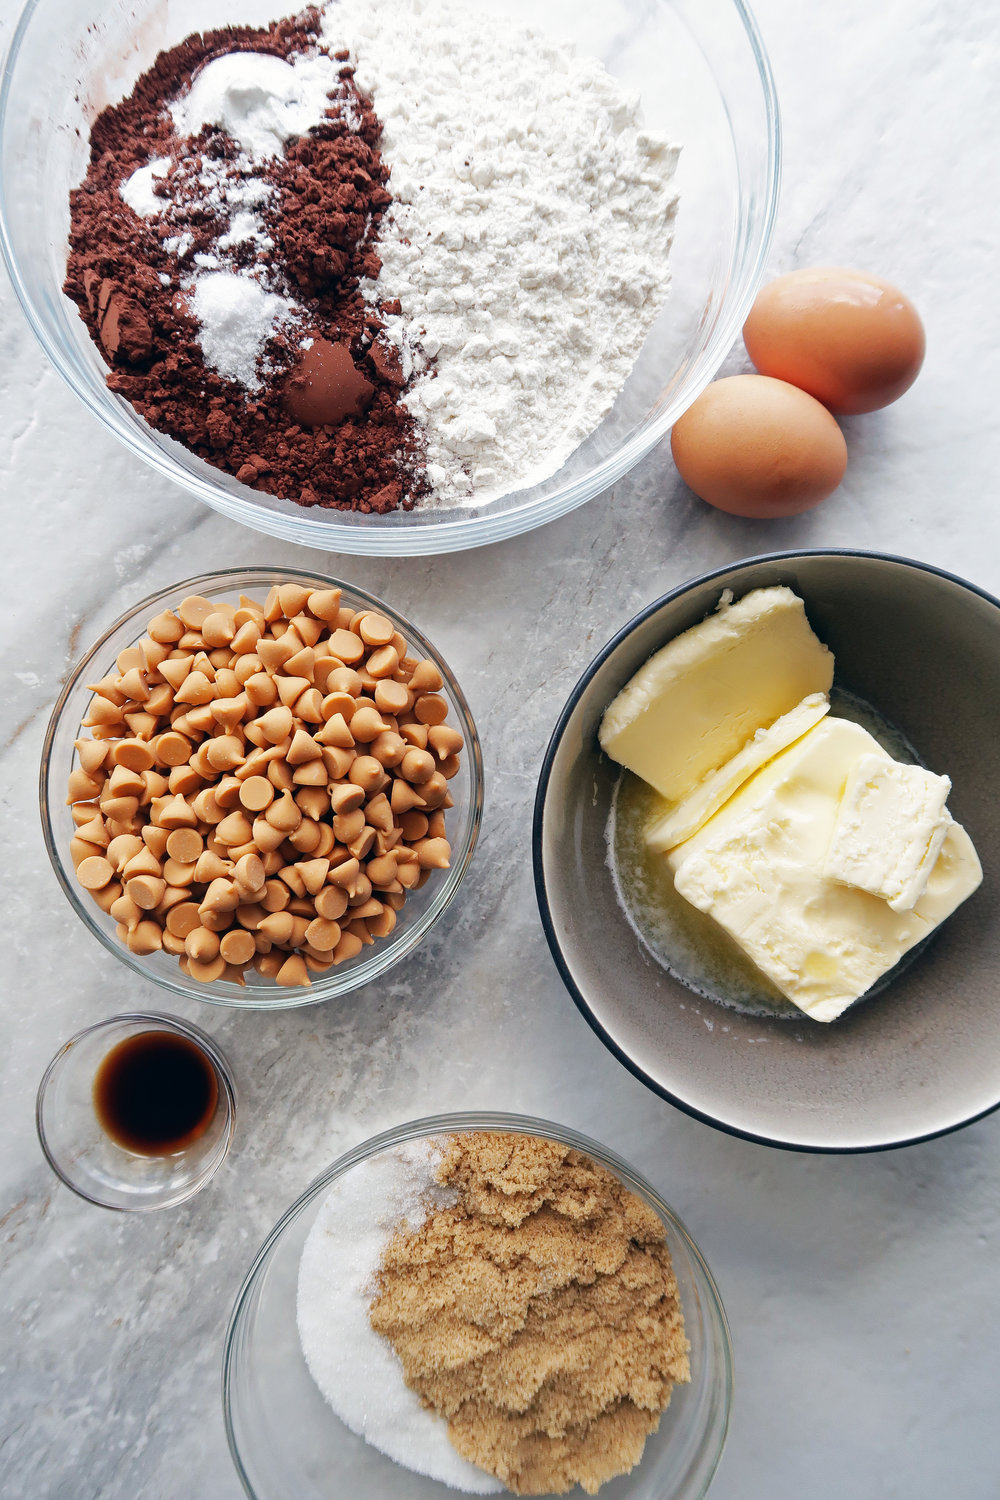 Many bowls filled with cocoa powder, flour mixture, sugar, butterscotch chips, eggs, butter, and vanilla.